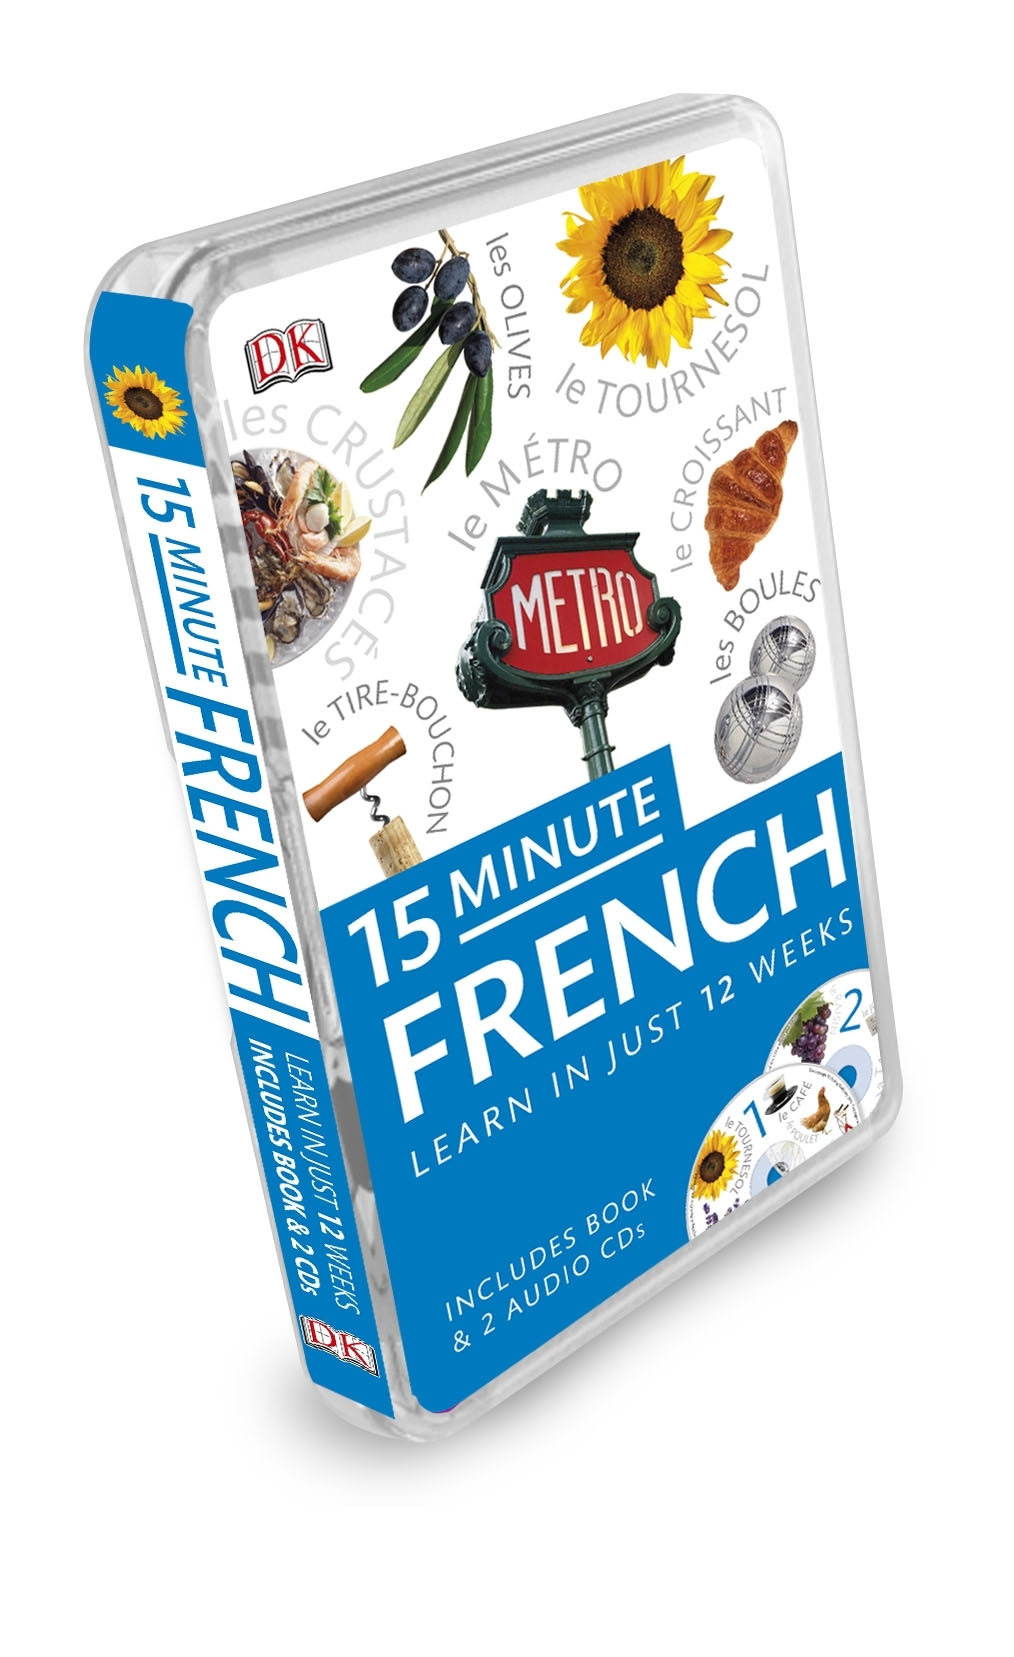 Book Cover:  15 Minute French: Learn in Just 12 Weeks: Book and CD Pack